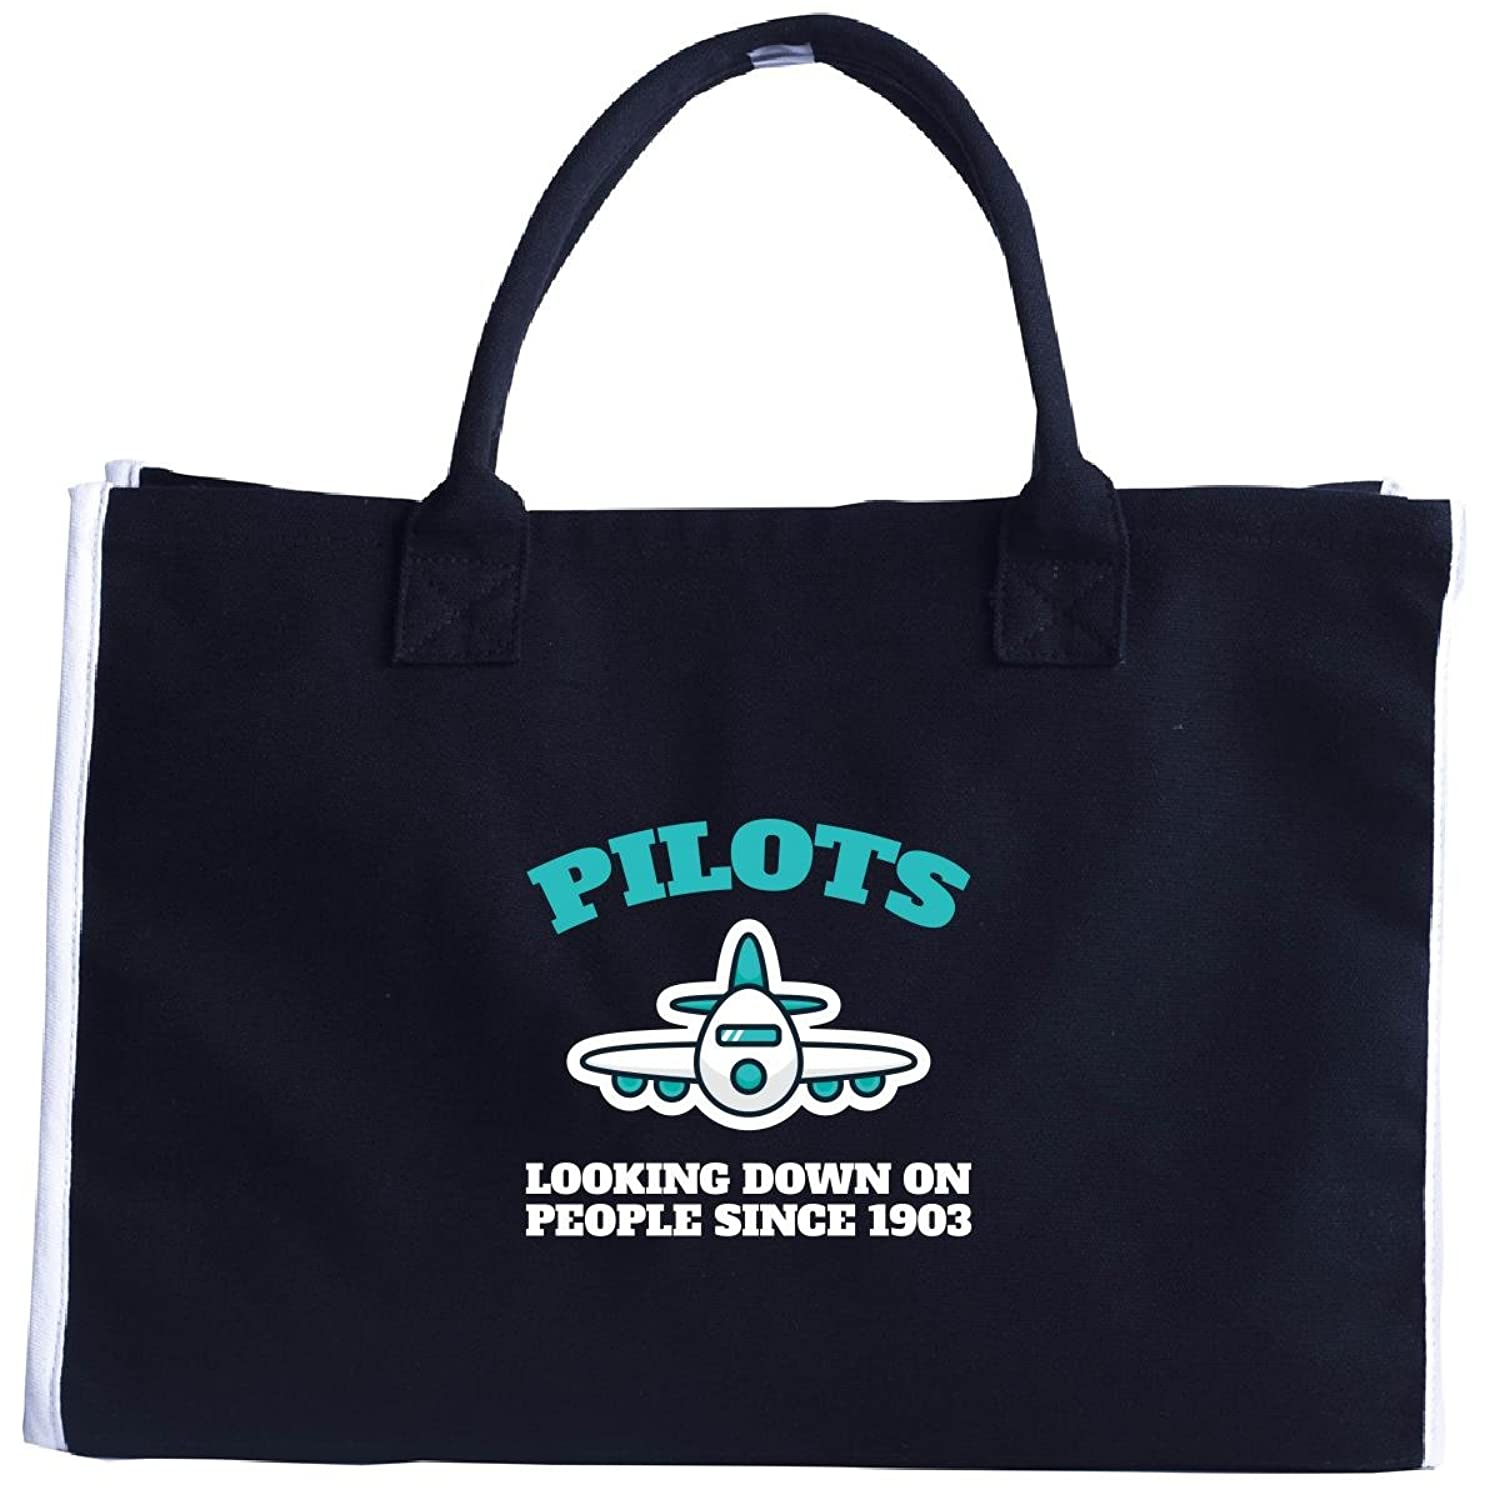 In Pilots Looking Down On People Since 1903 Great Funny Gift - Tote Bag